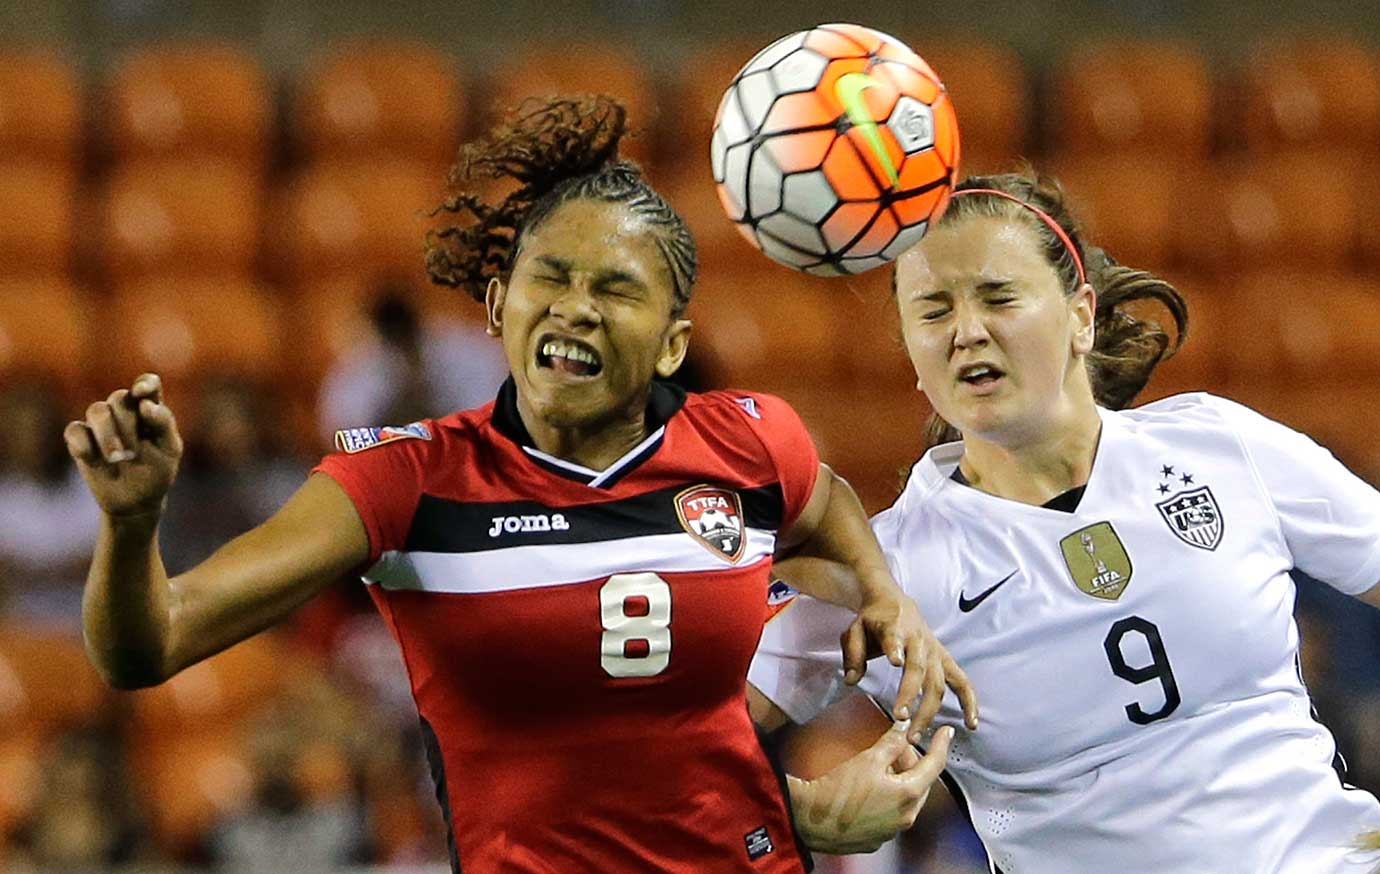 Trinidad and Tobago's Victoria Swift and Lindsey Horan of the U.S. go up for the ball.